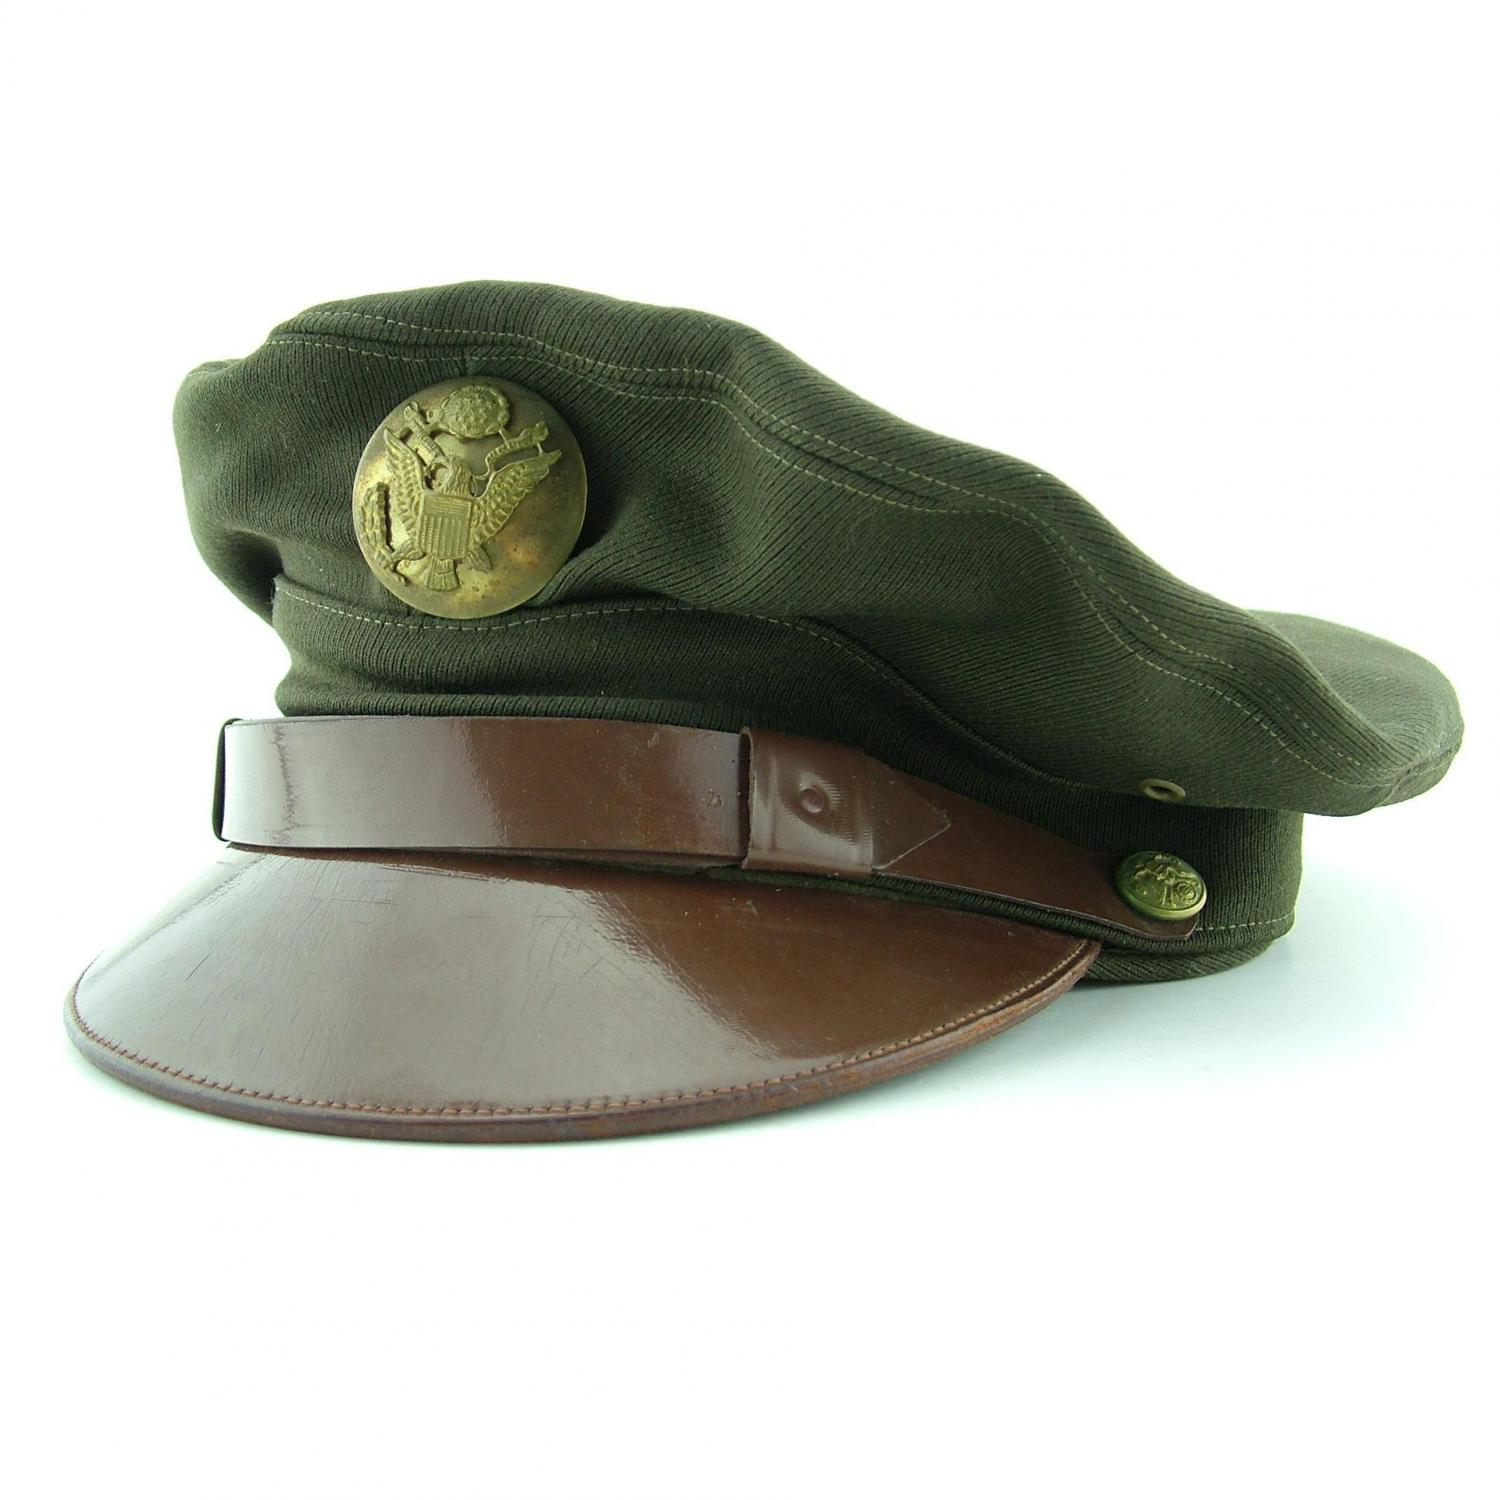 USAAF enlisted man's visor cap